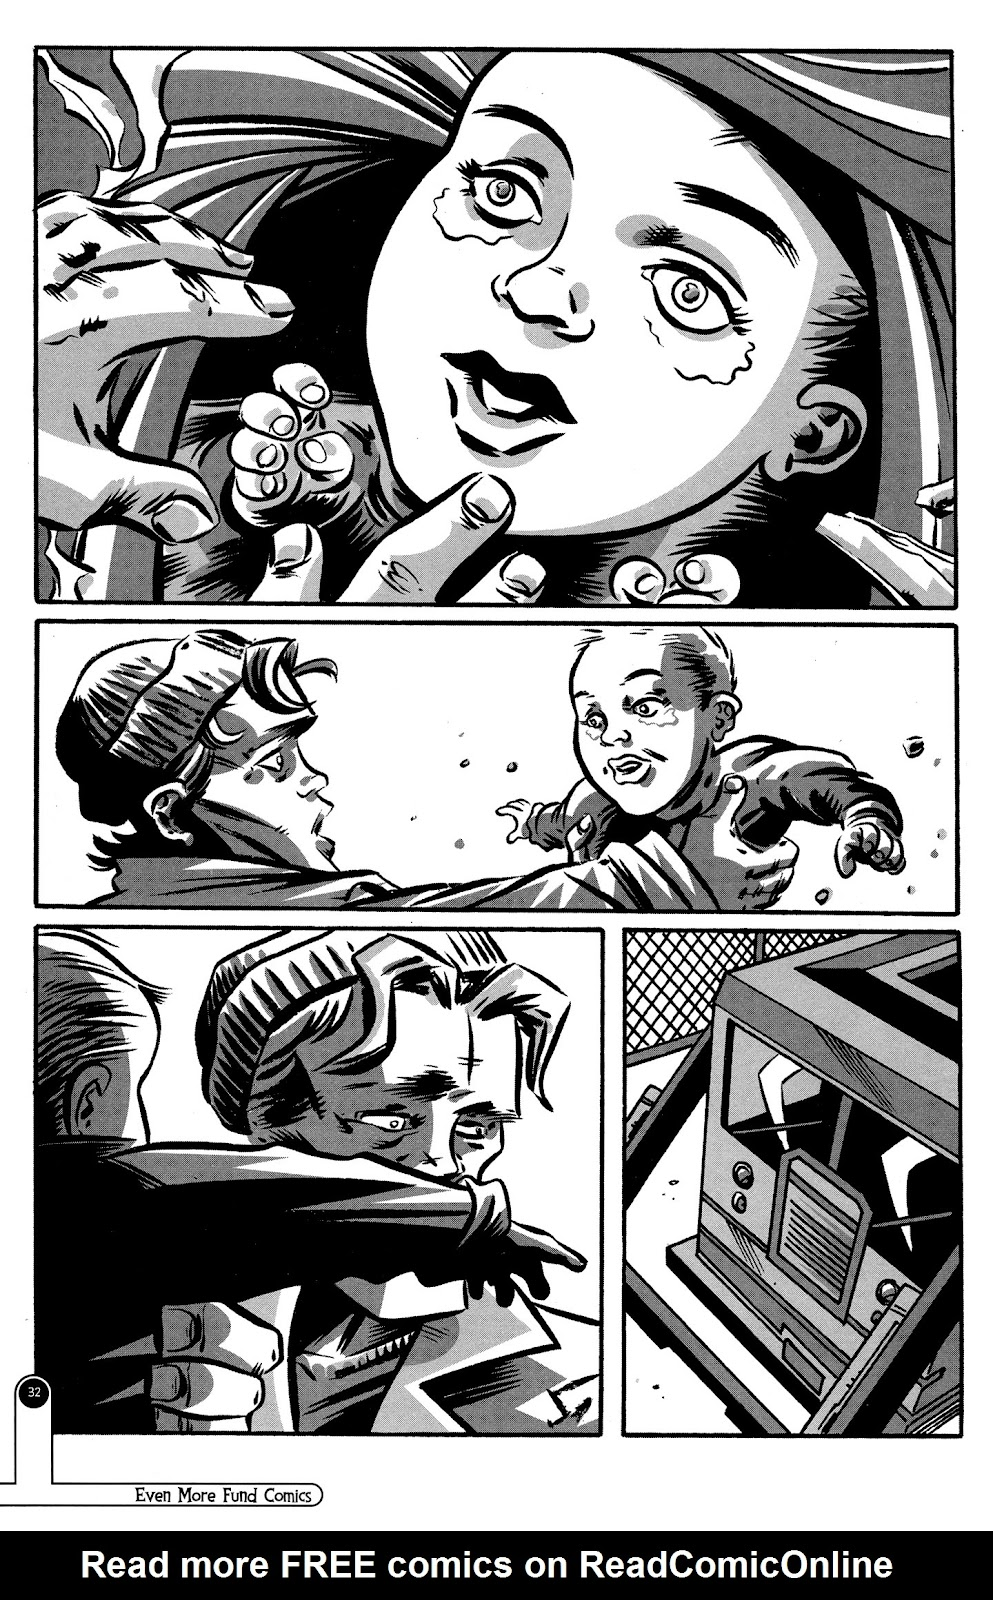 Read online Even More Fund Comics comic -  Issue # TPB (Part 1) - 32